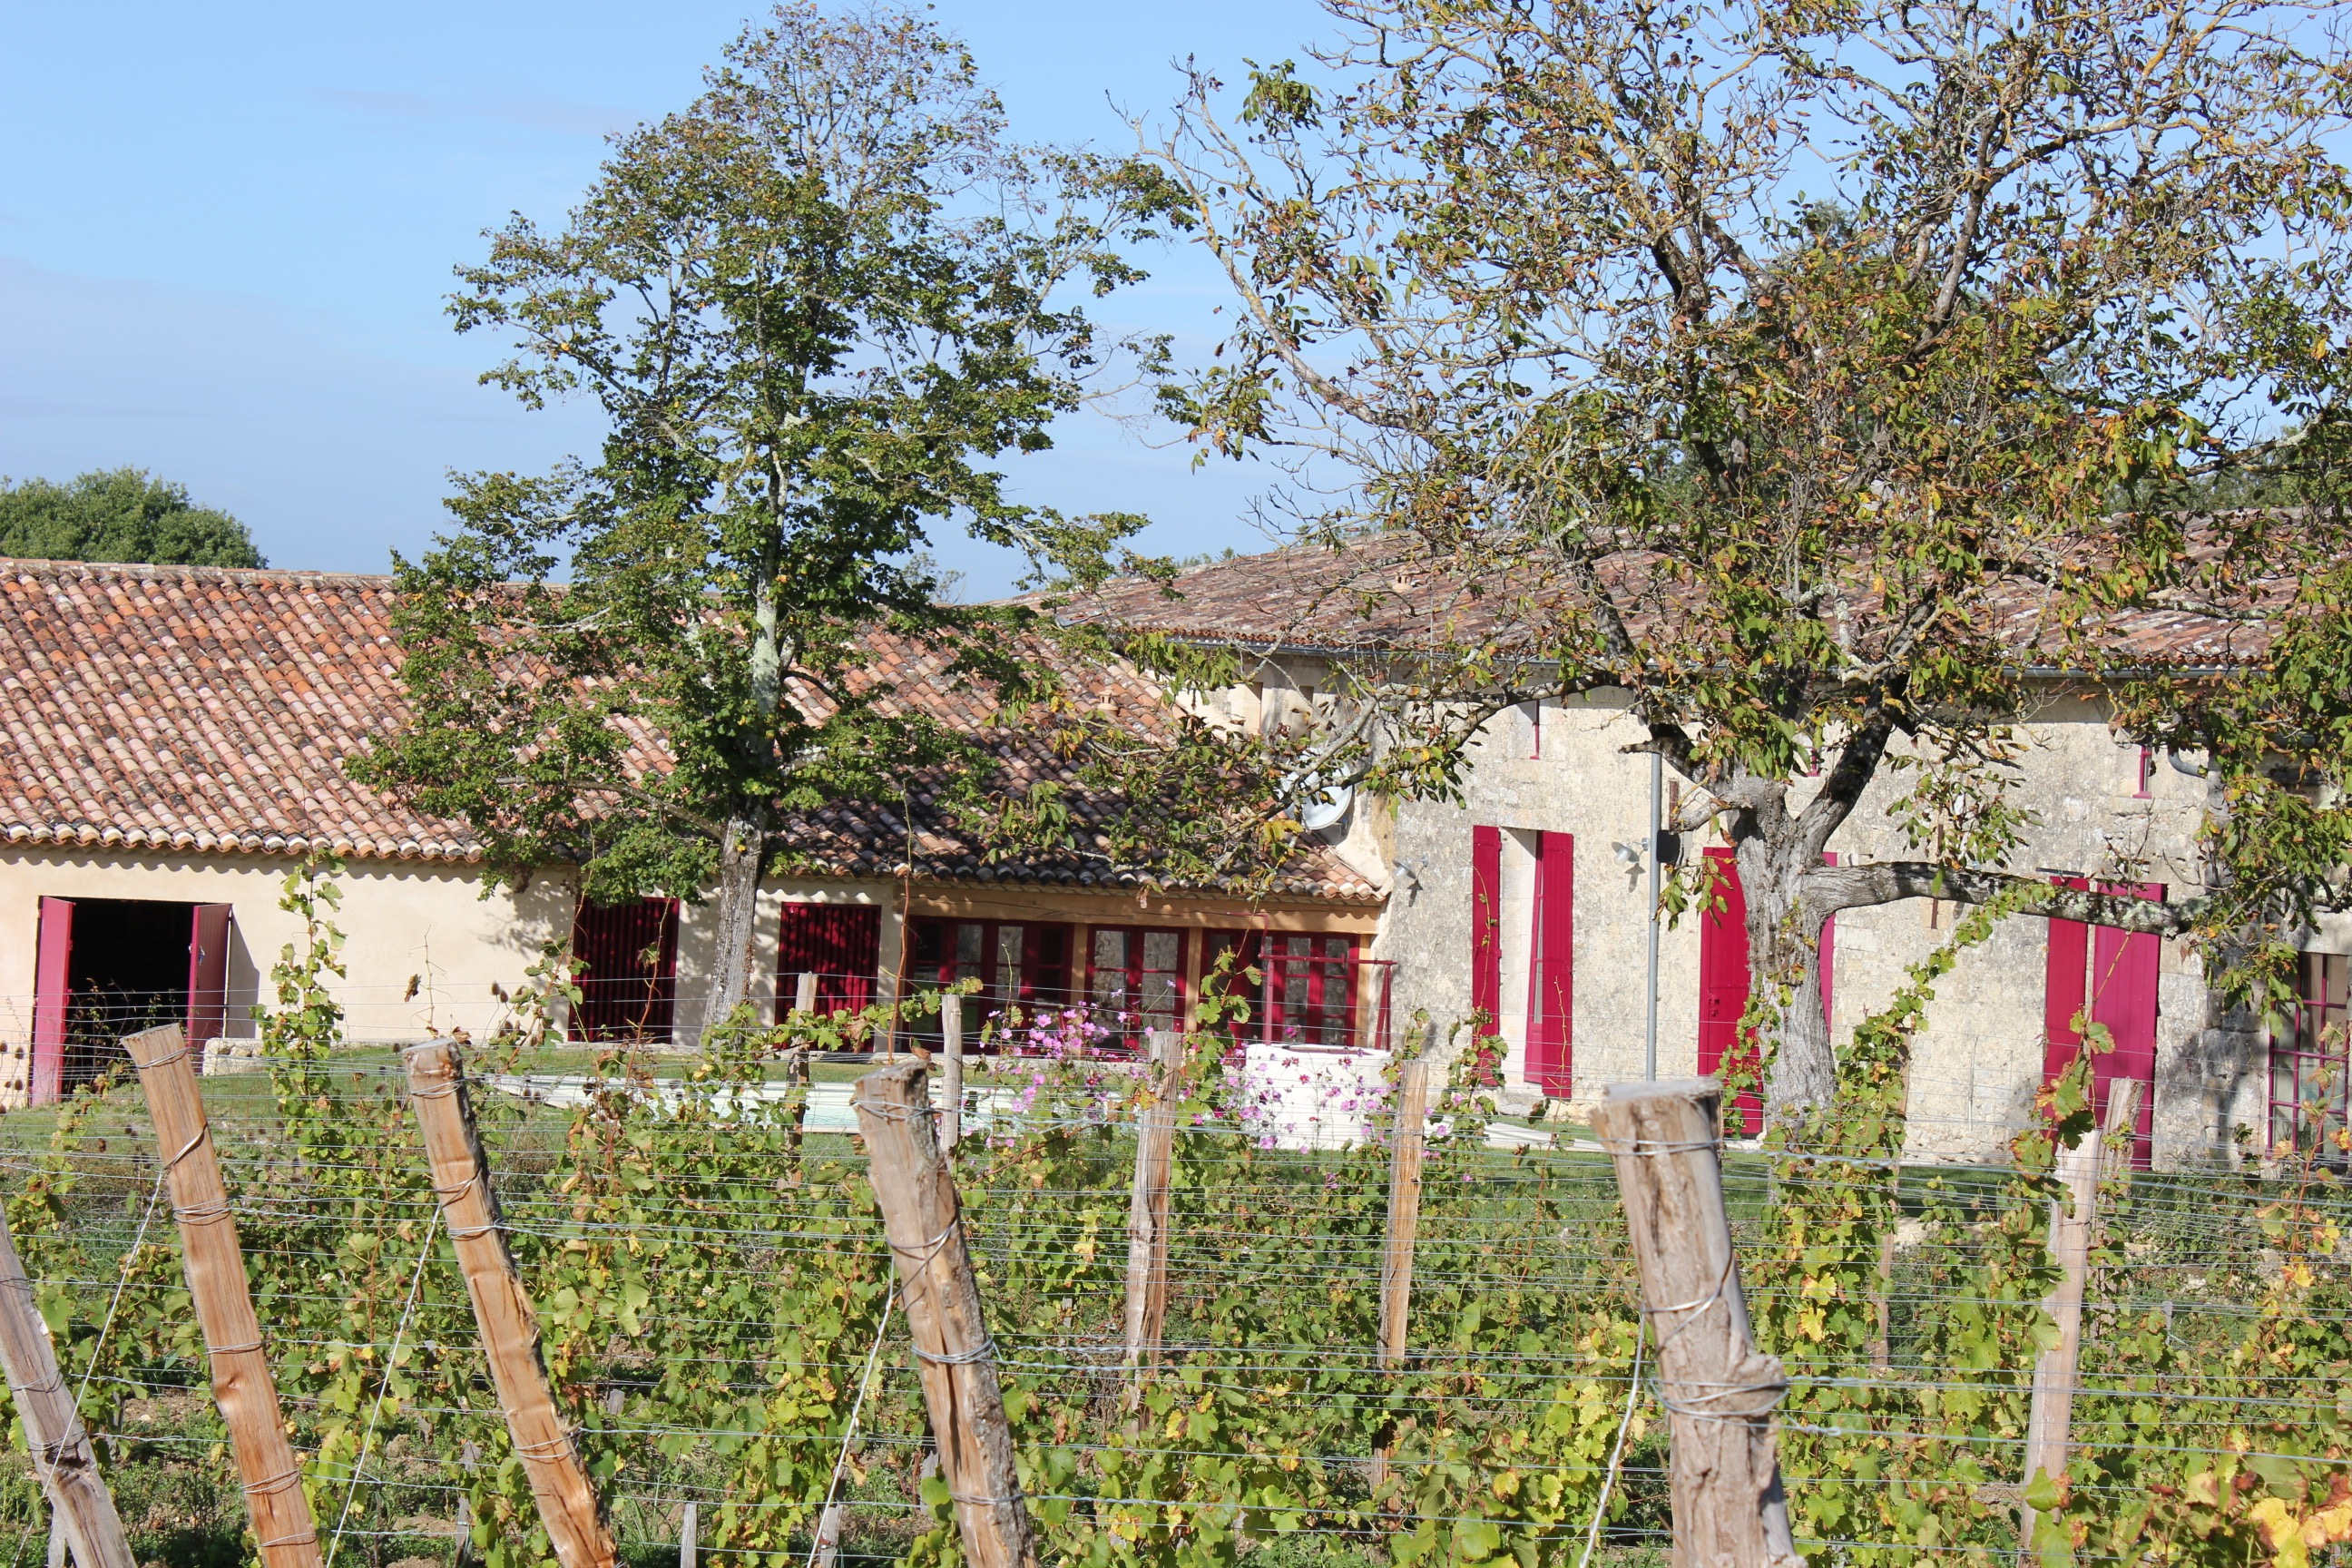 The house is surrounded by vines